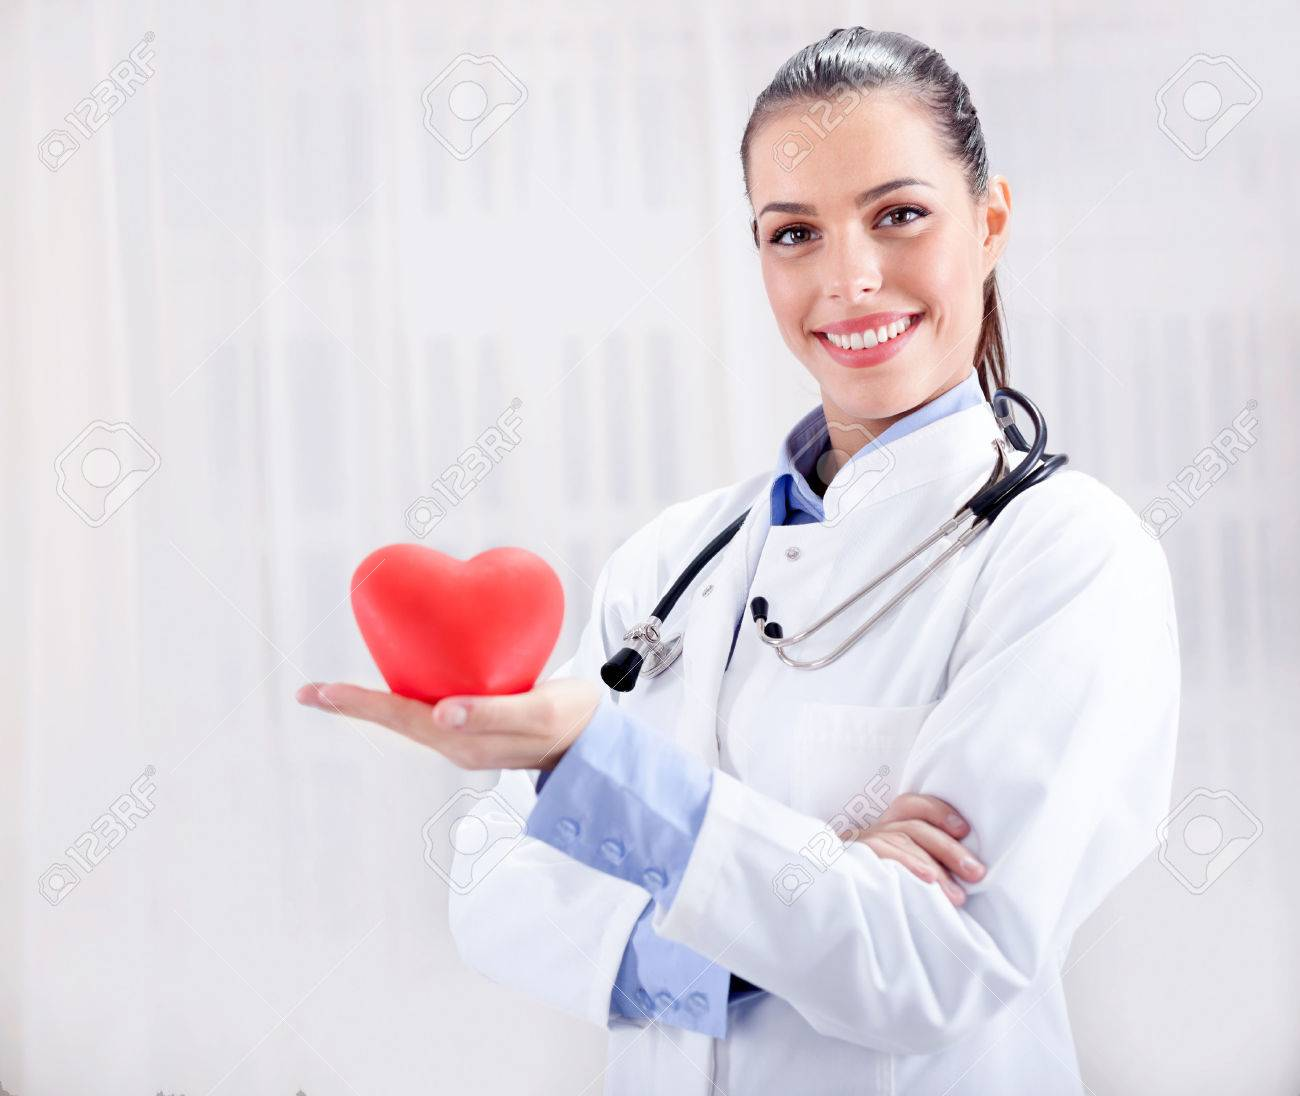 healthcare and medicine concept - smiling female doctor with heart and stethoscope - 35448965